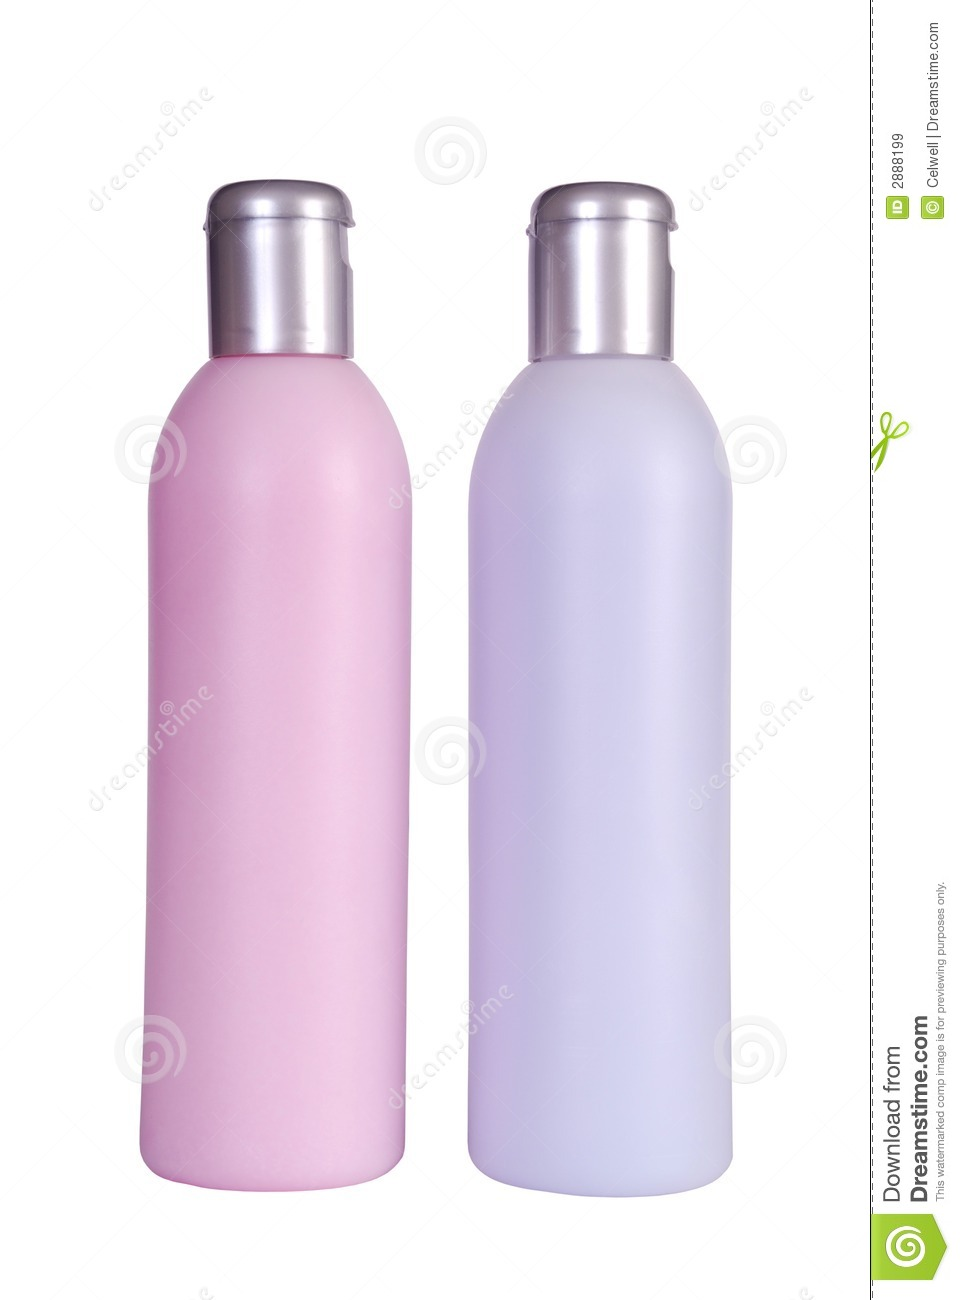 Two bottles of spa products